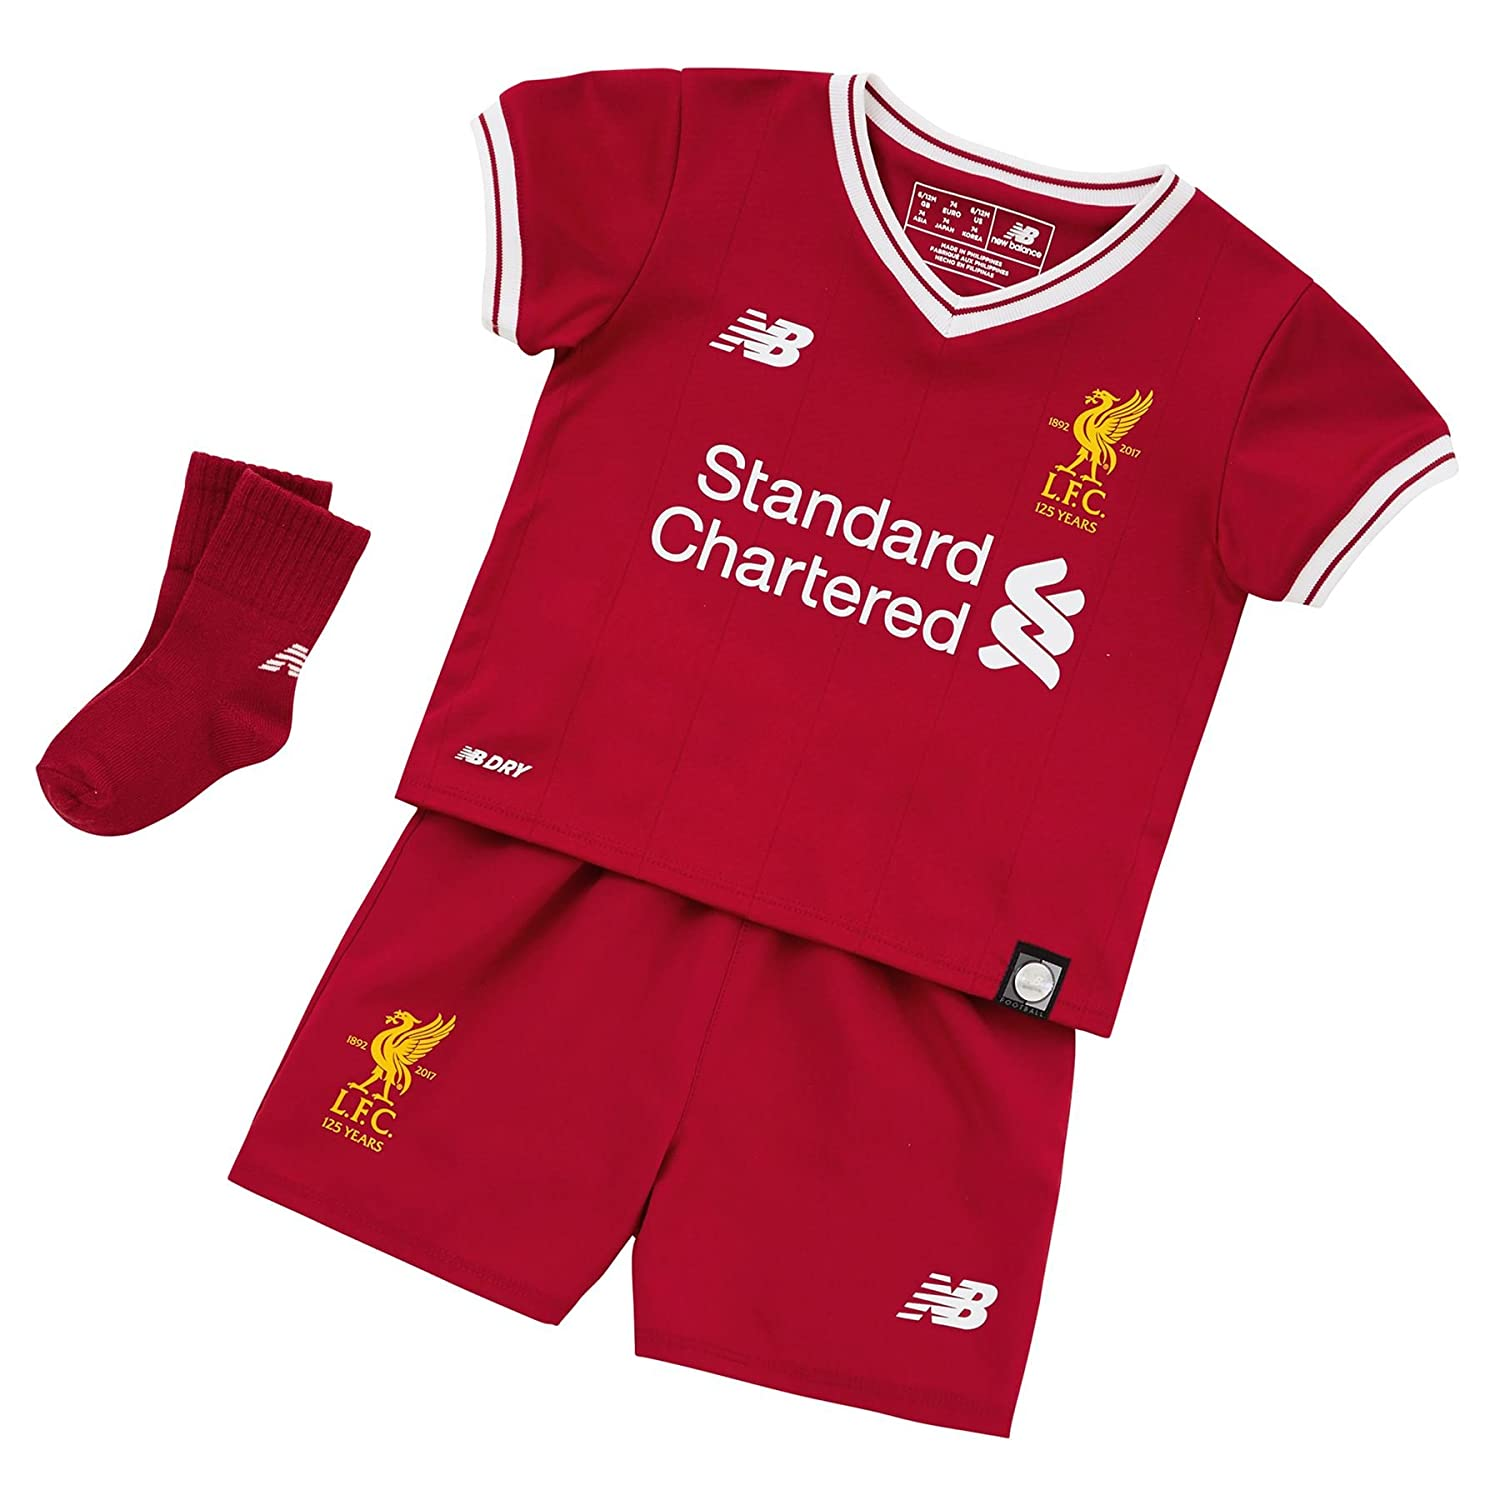 1b7fb4c9fbf Liverpool FC 17 18 Home Infant Football Kit - Red - size 3-6M   Amazon.co.uk  Clothing